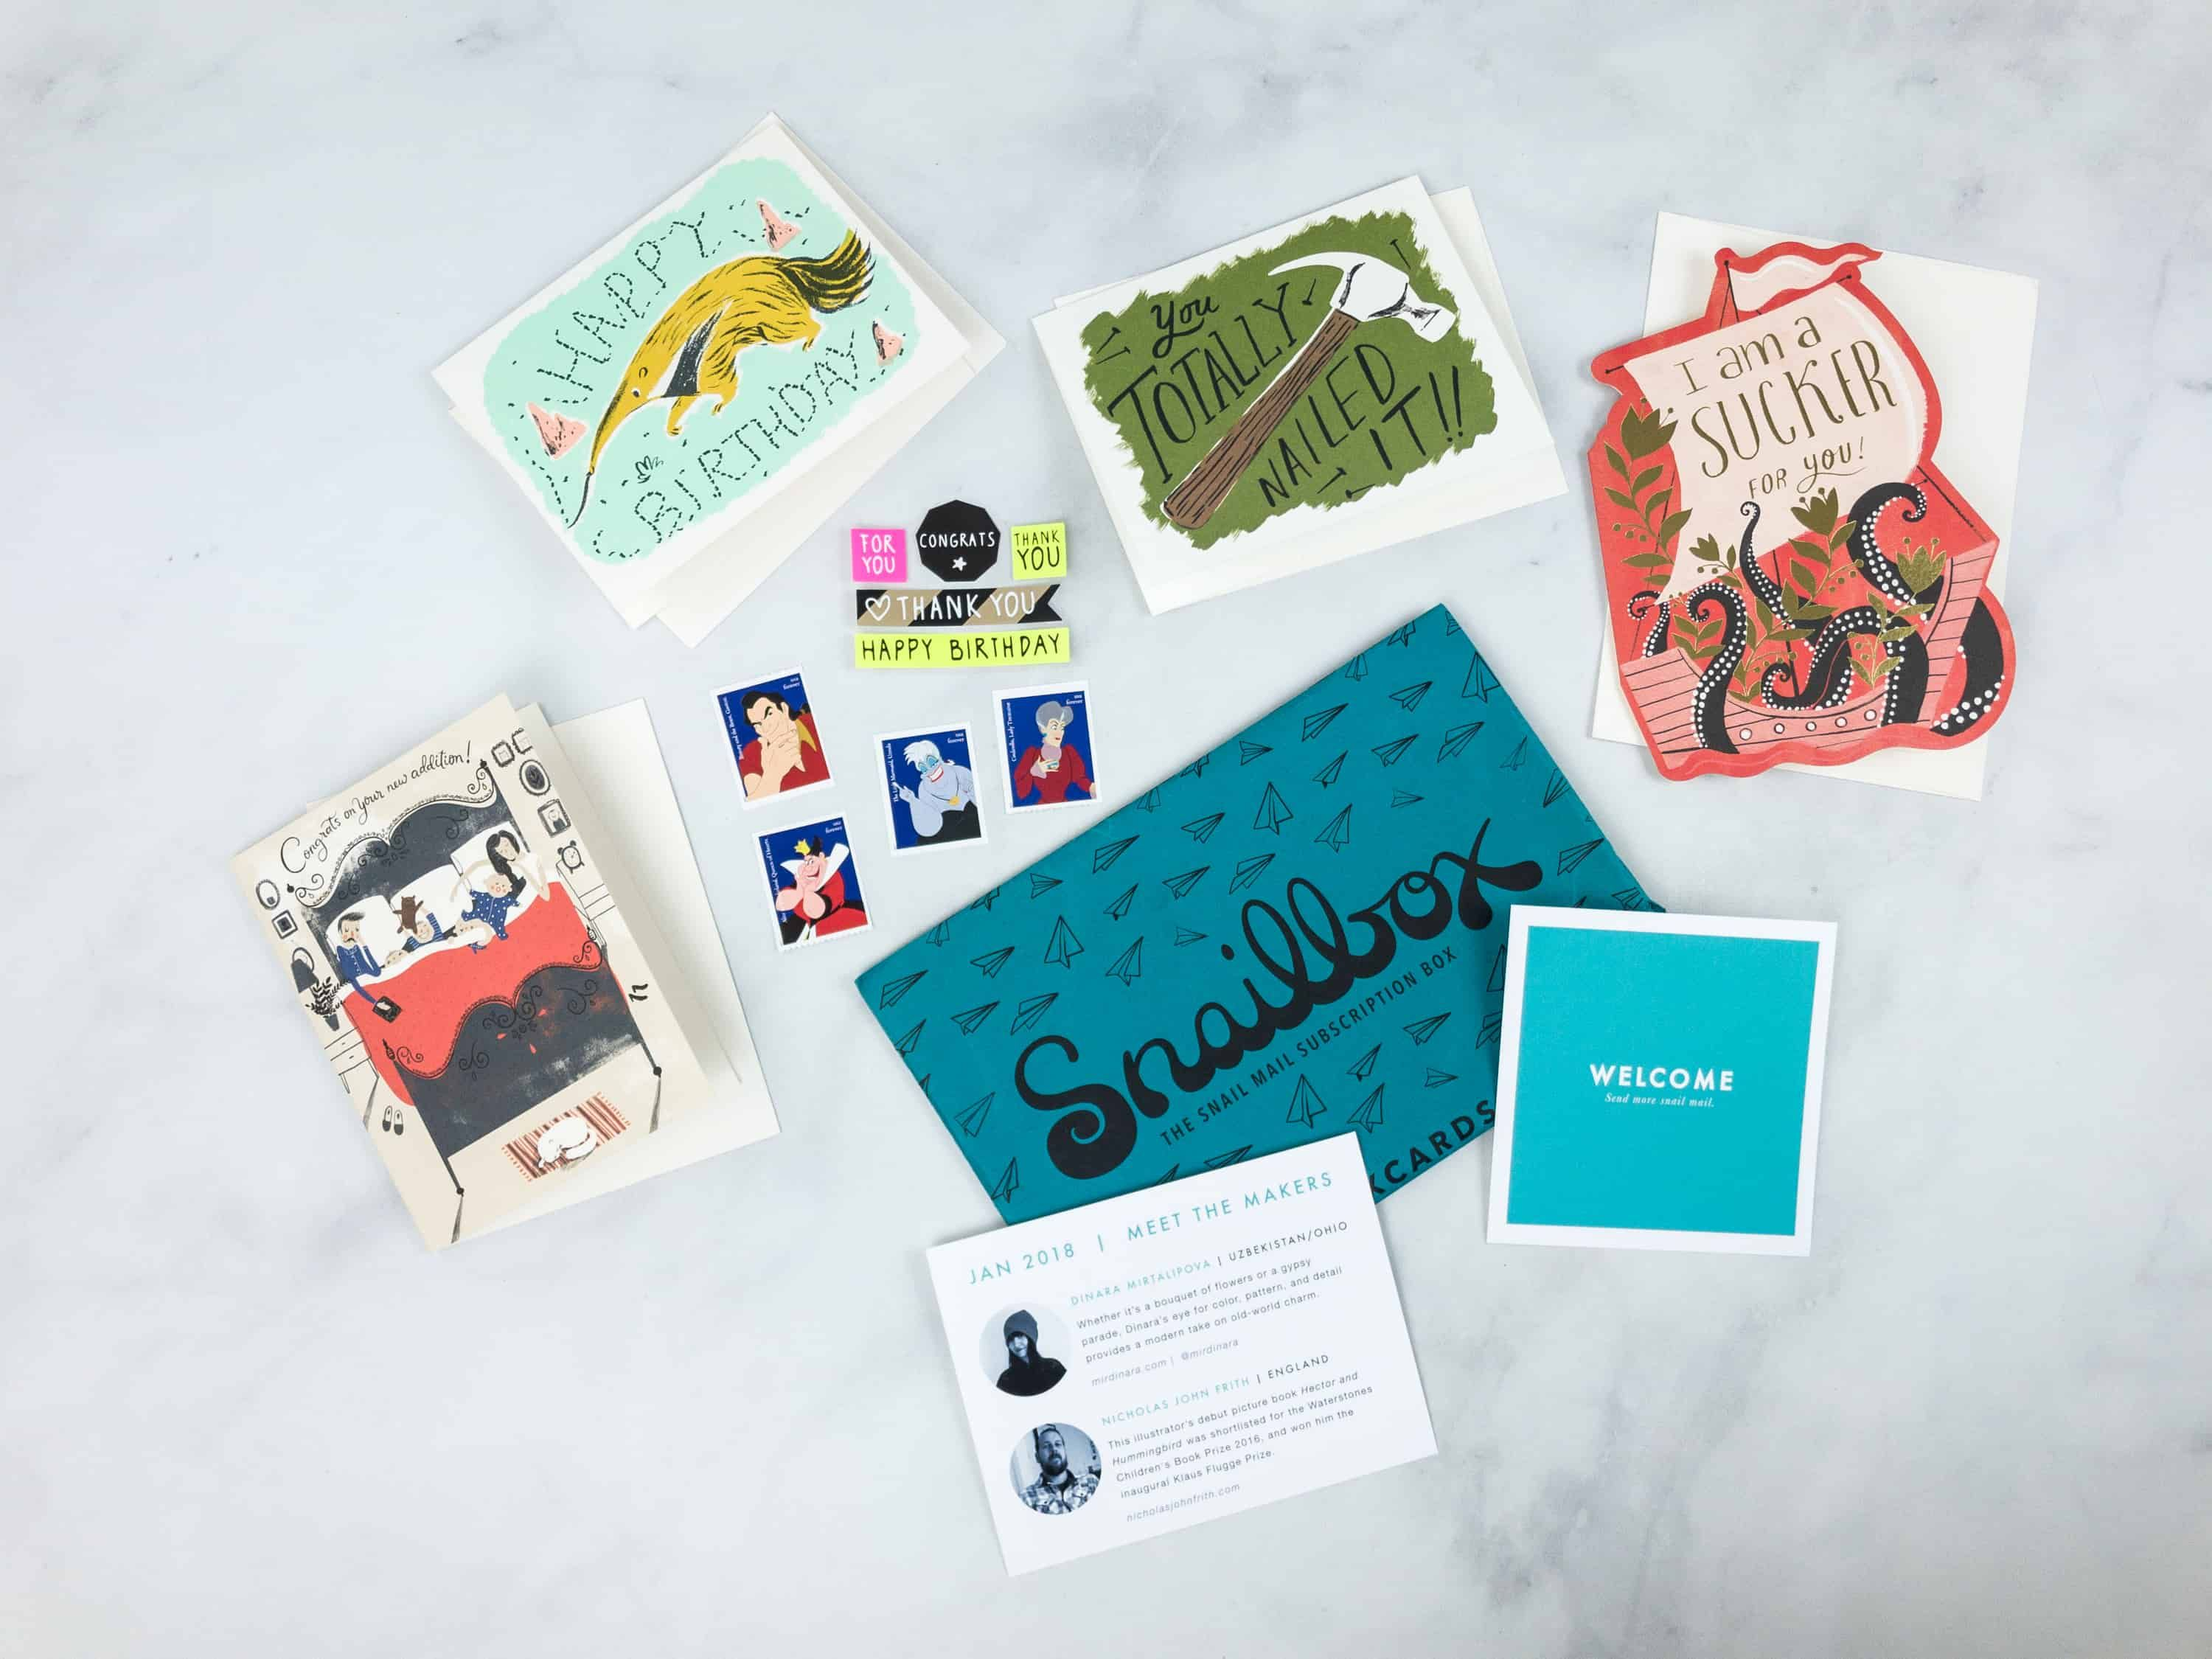 Snailbox January 2018 Subscription Box Review Hello Subscription Unique Greeting Cards Subscription Box Review Forever Stamps